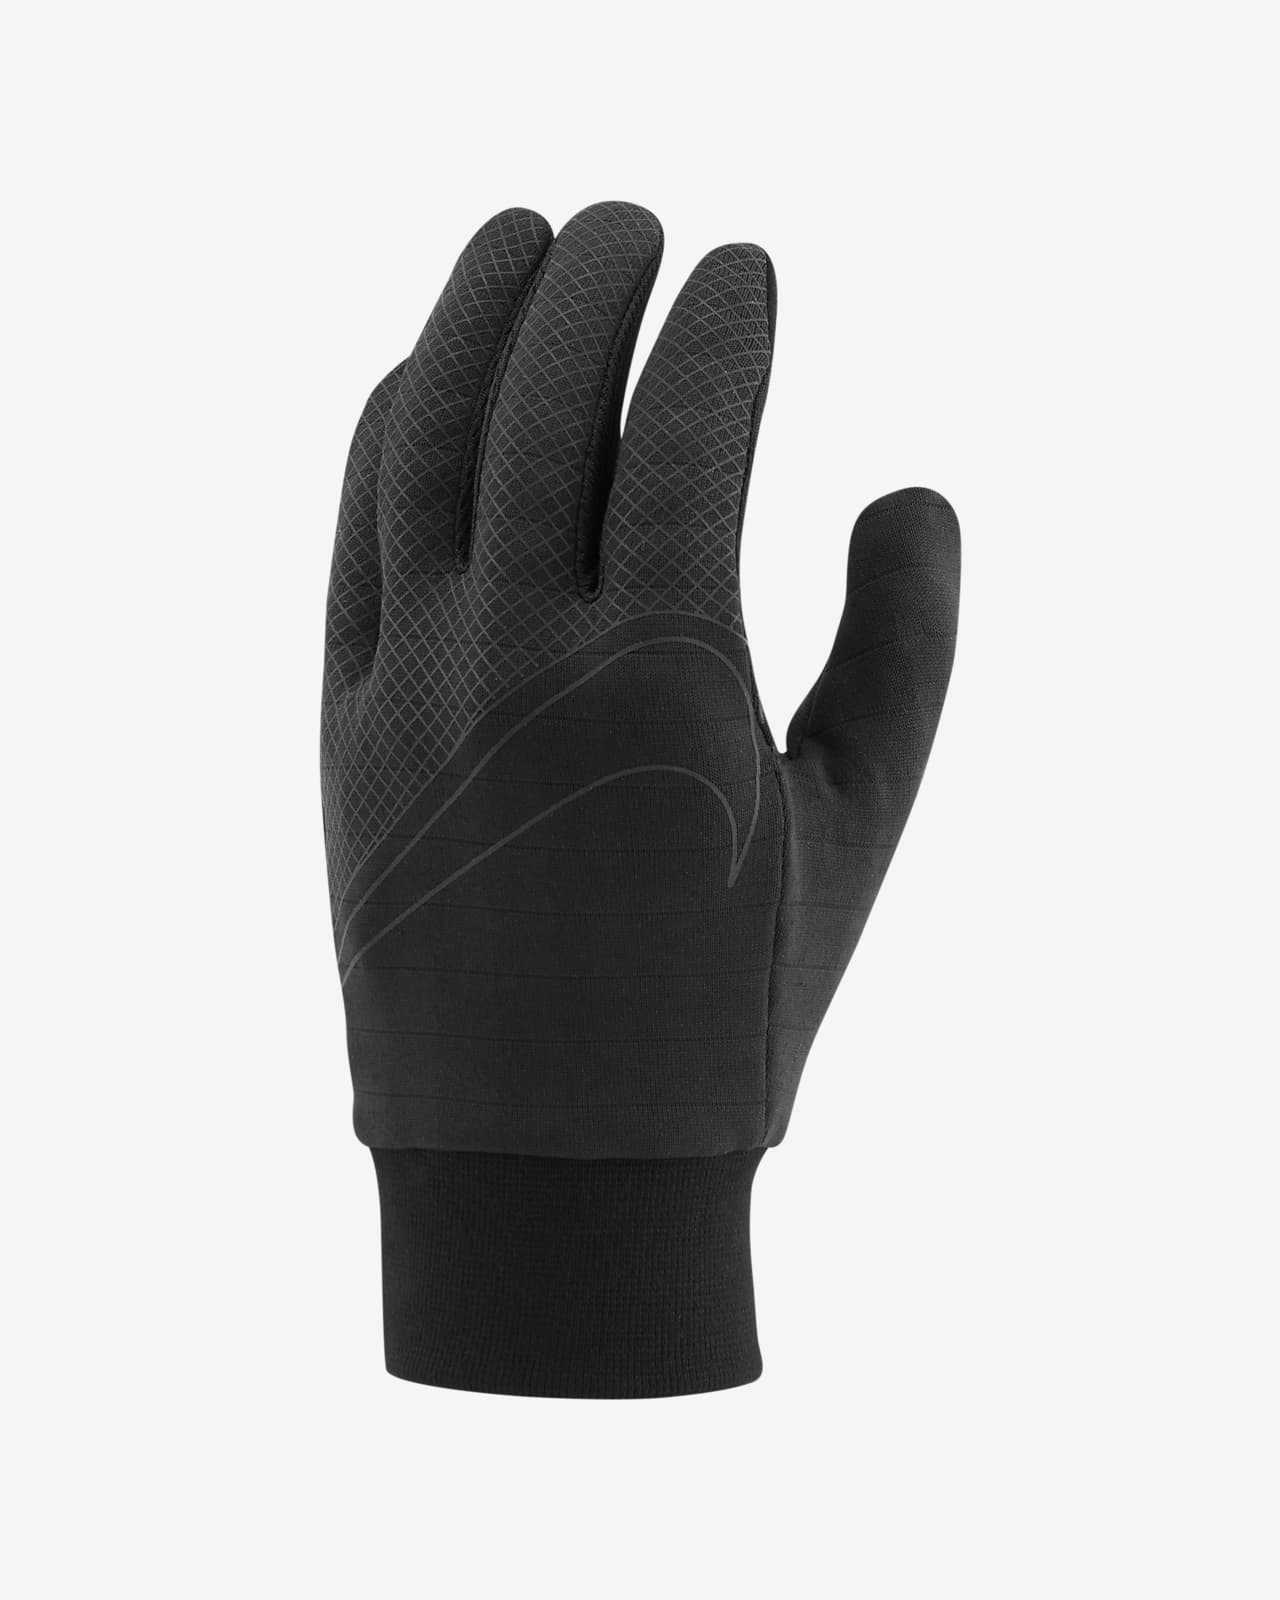 Nike Sphere 360 Men's Running Gloves